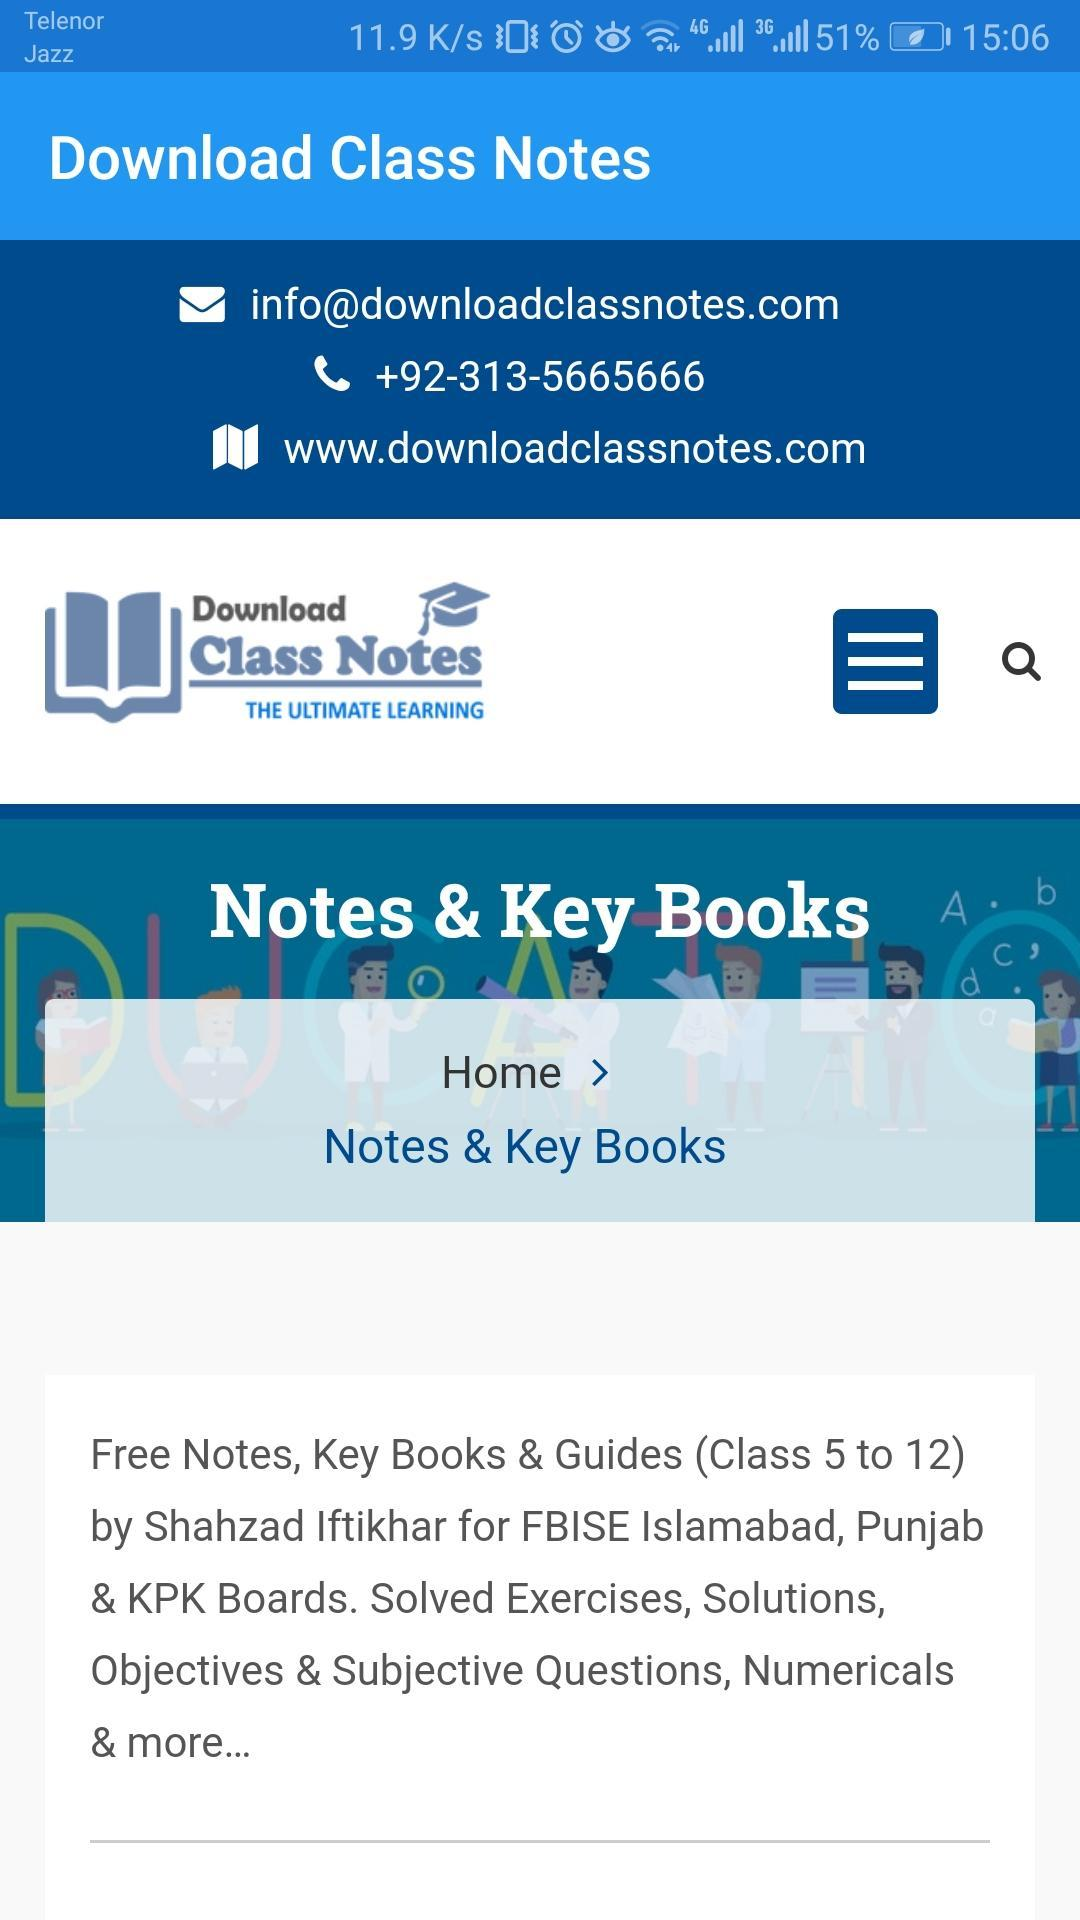 Download Class Notes for Android - APK Download